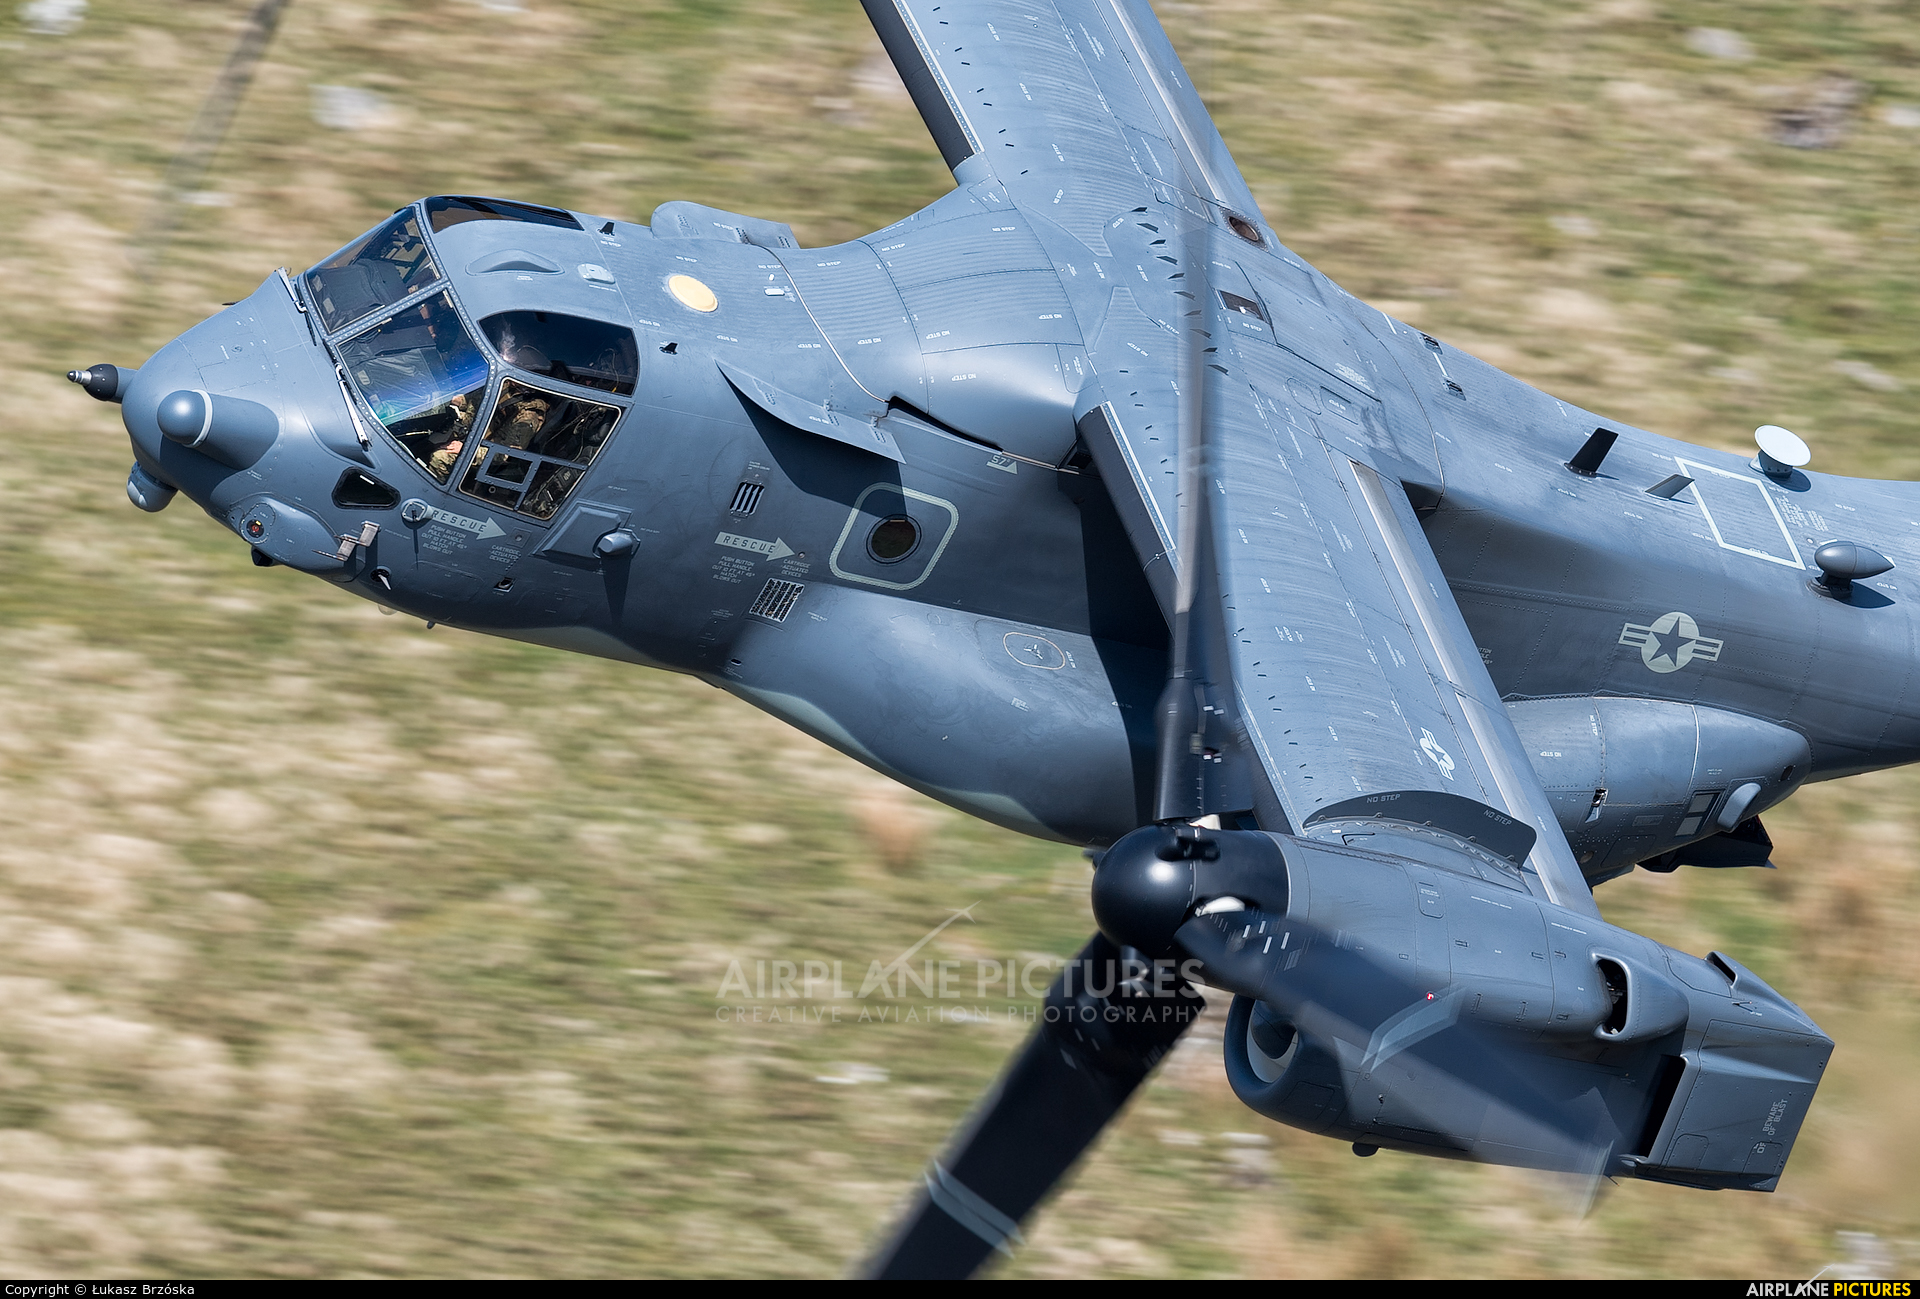 USA - Air Force 11-0058 aircraft at Machynlleth Loop - LFA 7